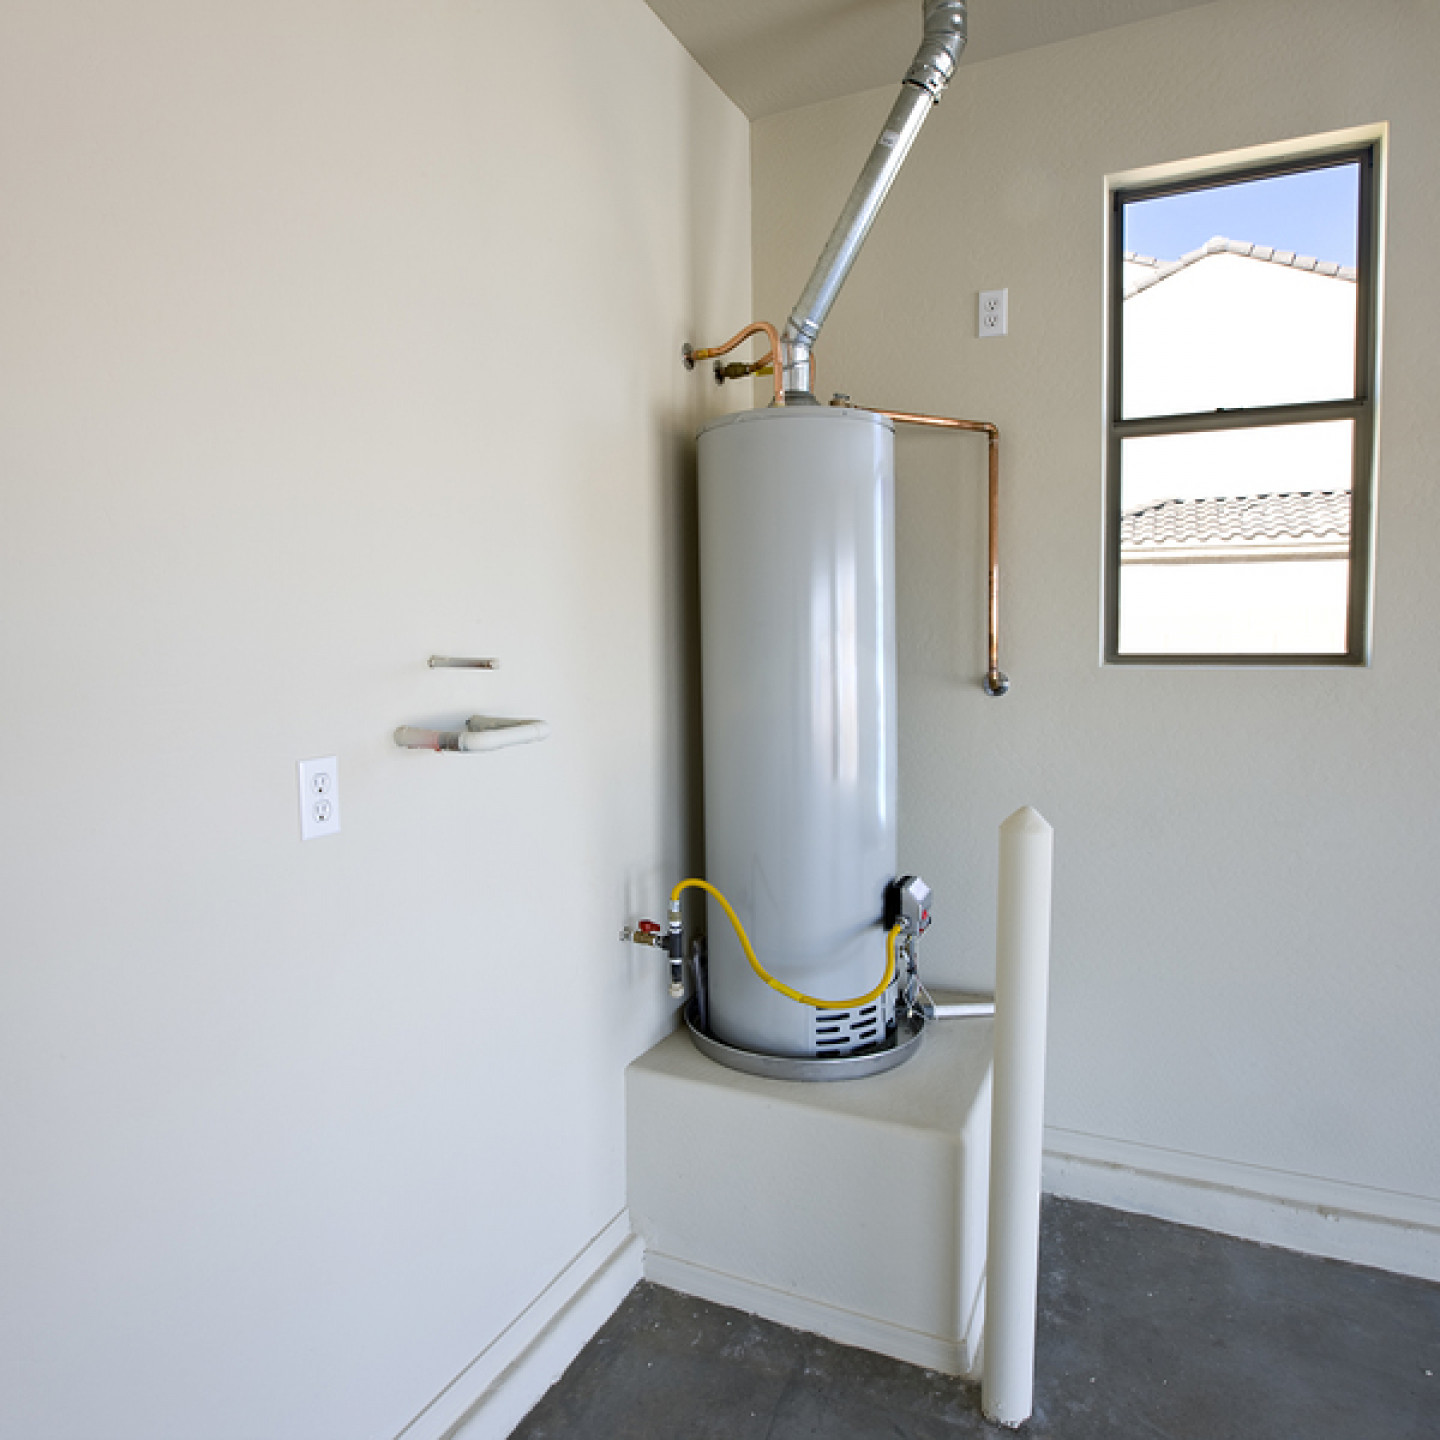 Consider going tankless